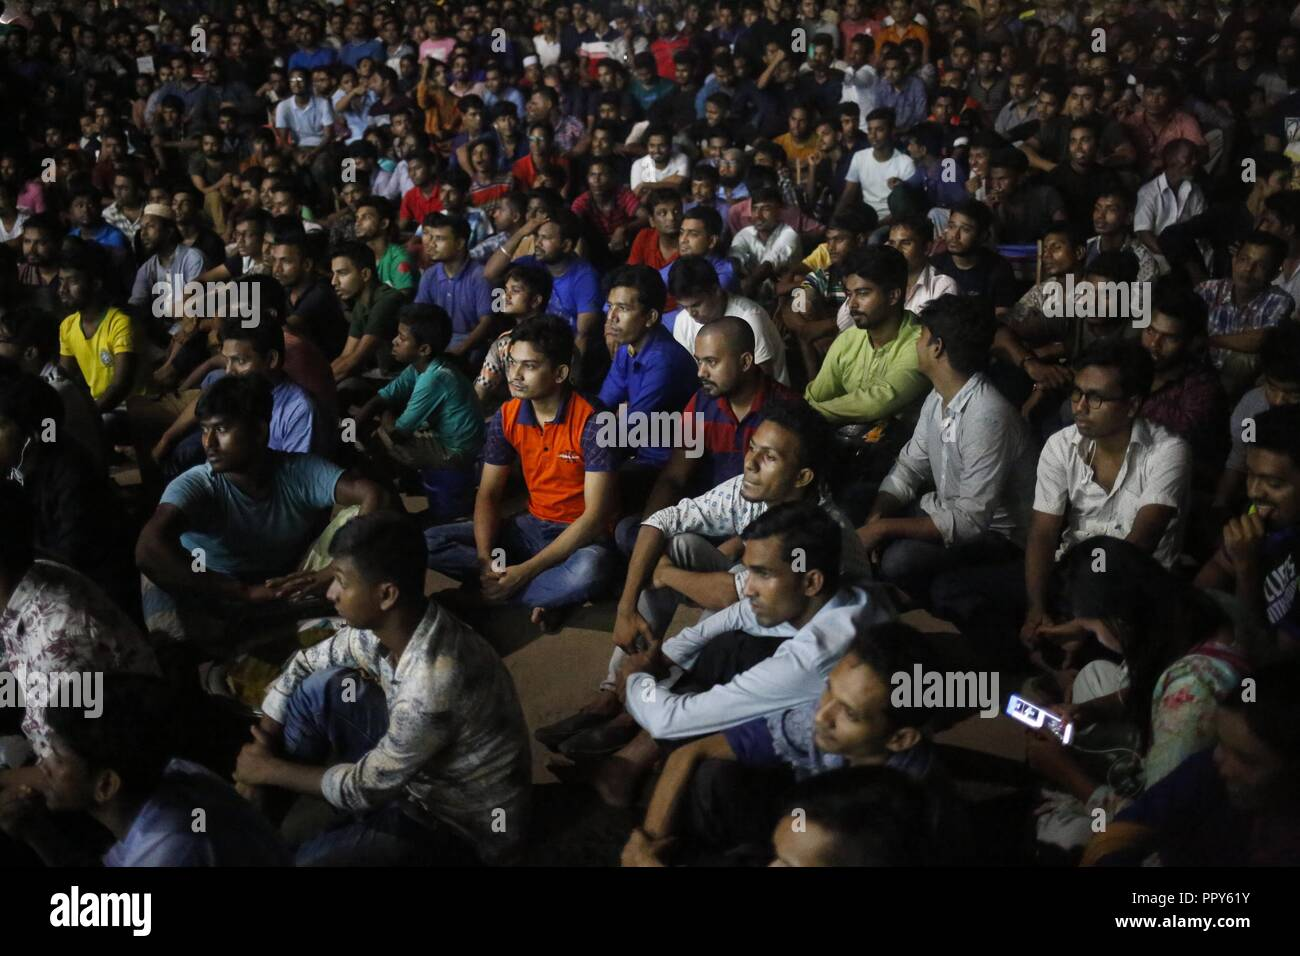 Dhaka, Bangladesh. 28th Sep, 2018. People watch Asia Cup Final cricket Match between Bangladesh vs. India in front of the Teacher - Student Center near Dhaka University Campus. Credit: MD Mehedi Hasan/ZUMA Wire/Alamy Live News - Stock Image